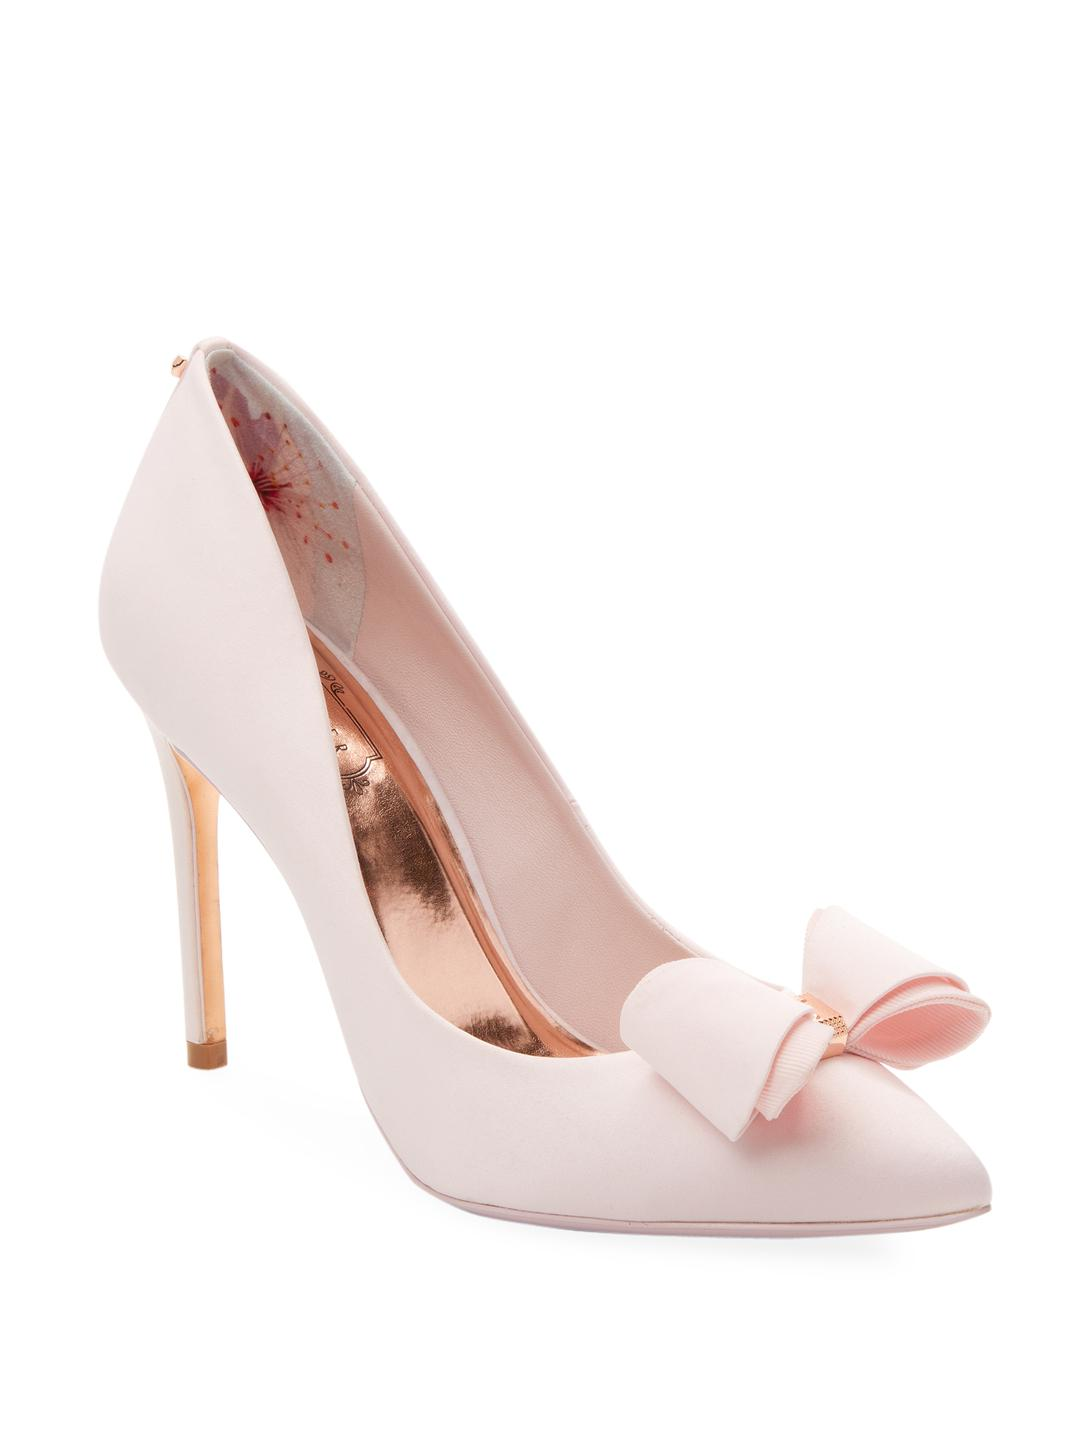 f861a4a3b7aaf2 Lyst - Ted Baker Azeline High Heel Pump in Pink